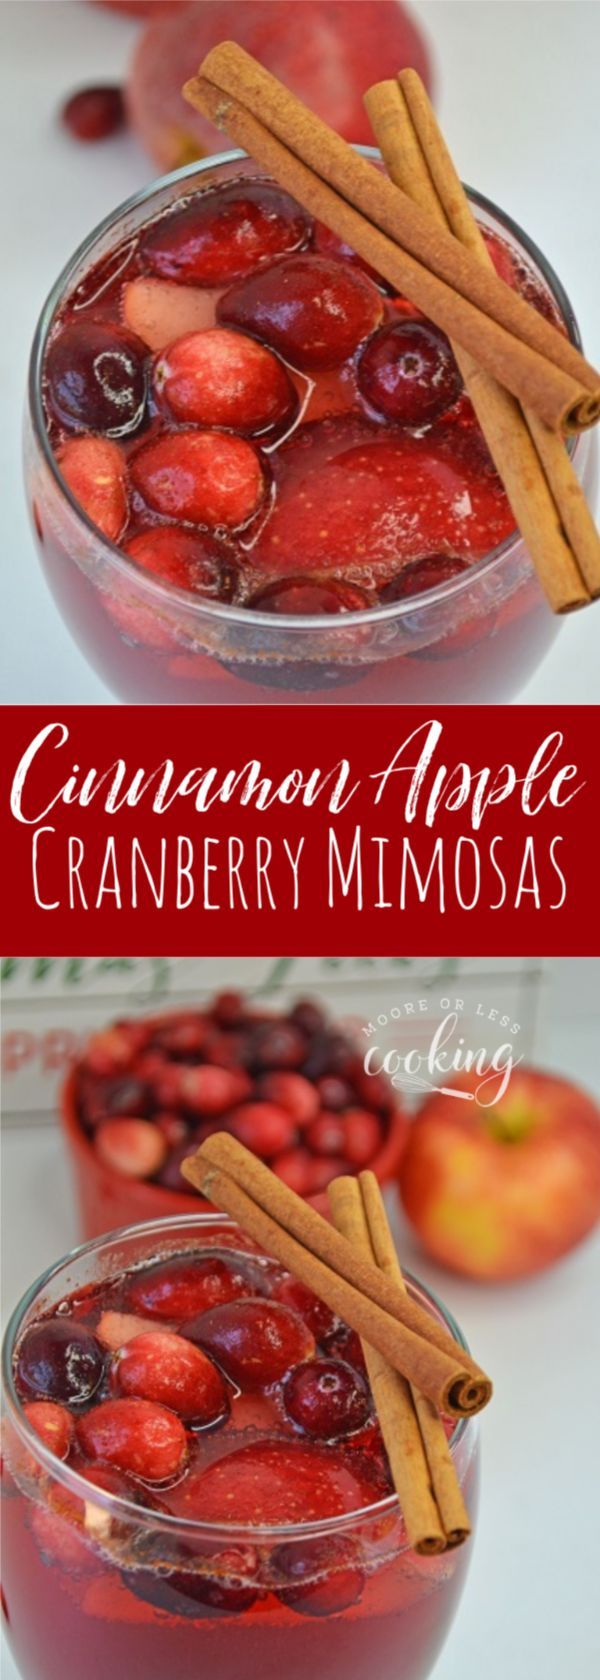 A crisp, festive and fun to drink fall cocktail for the holidays or any day with fresh cranberries and apple.